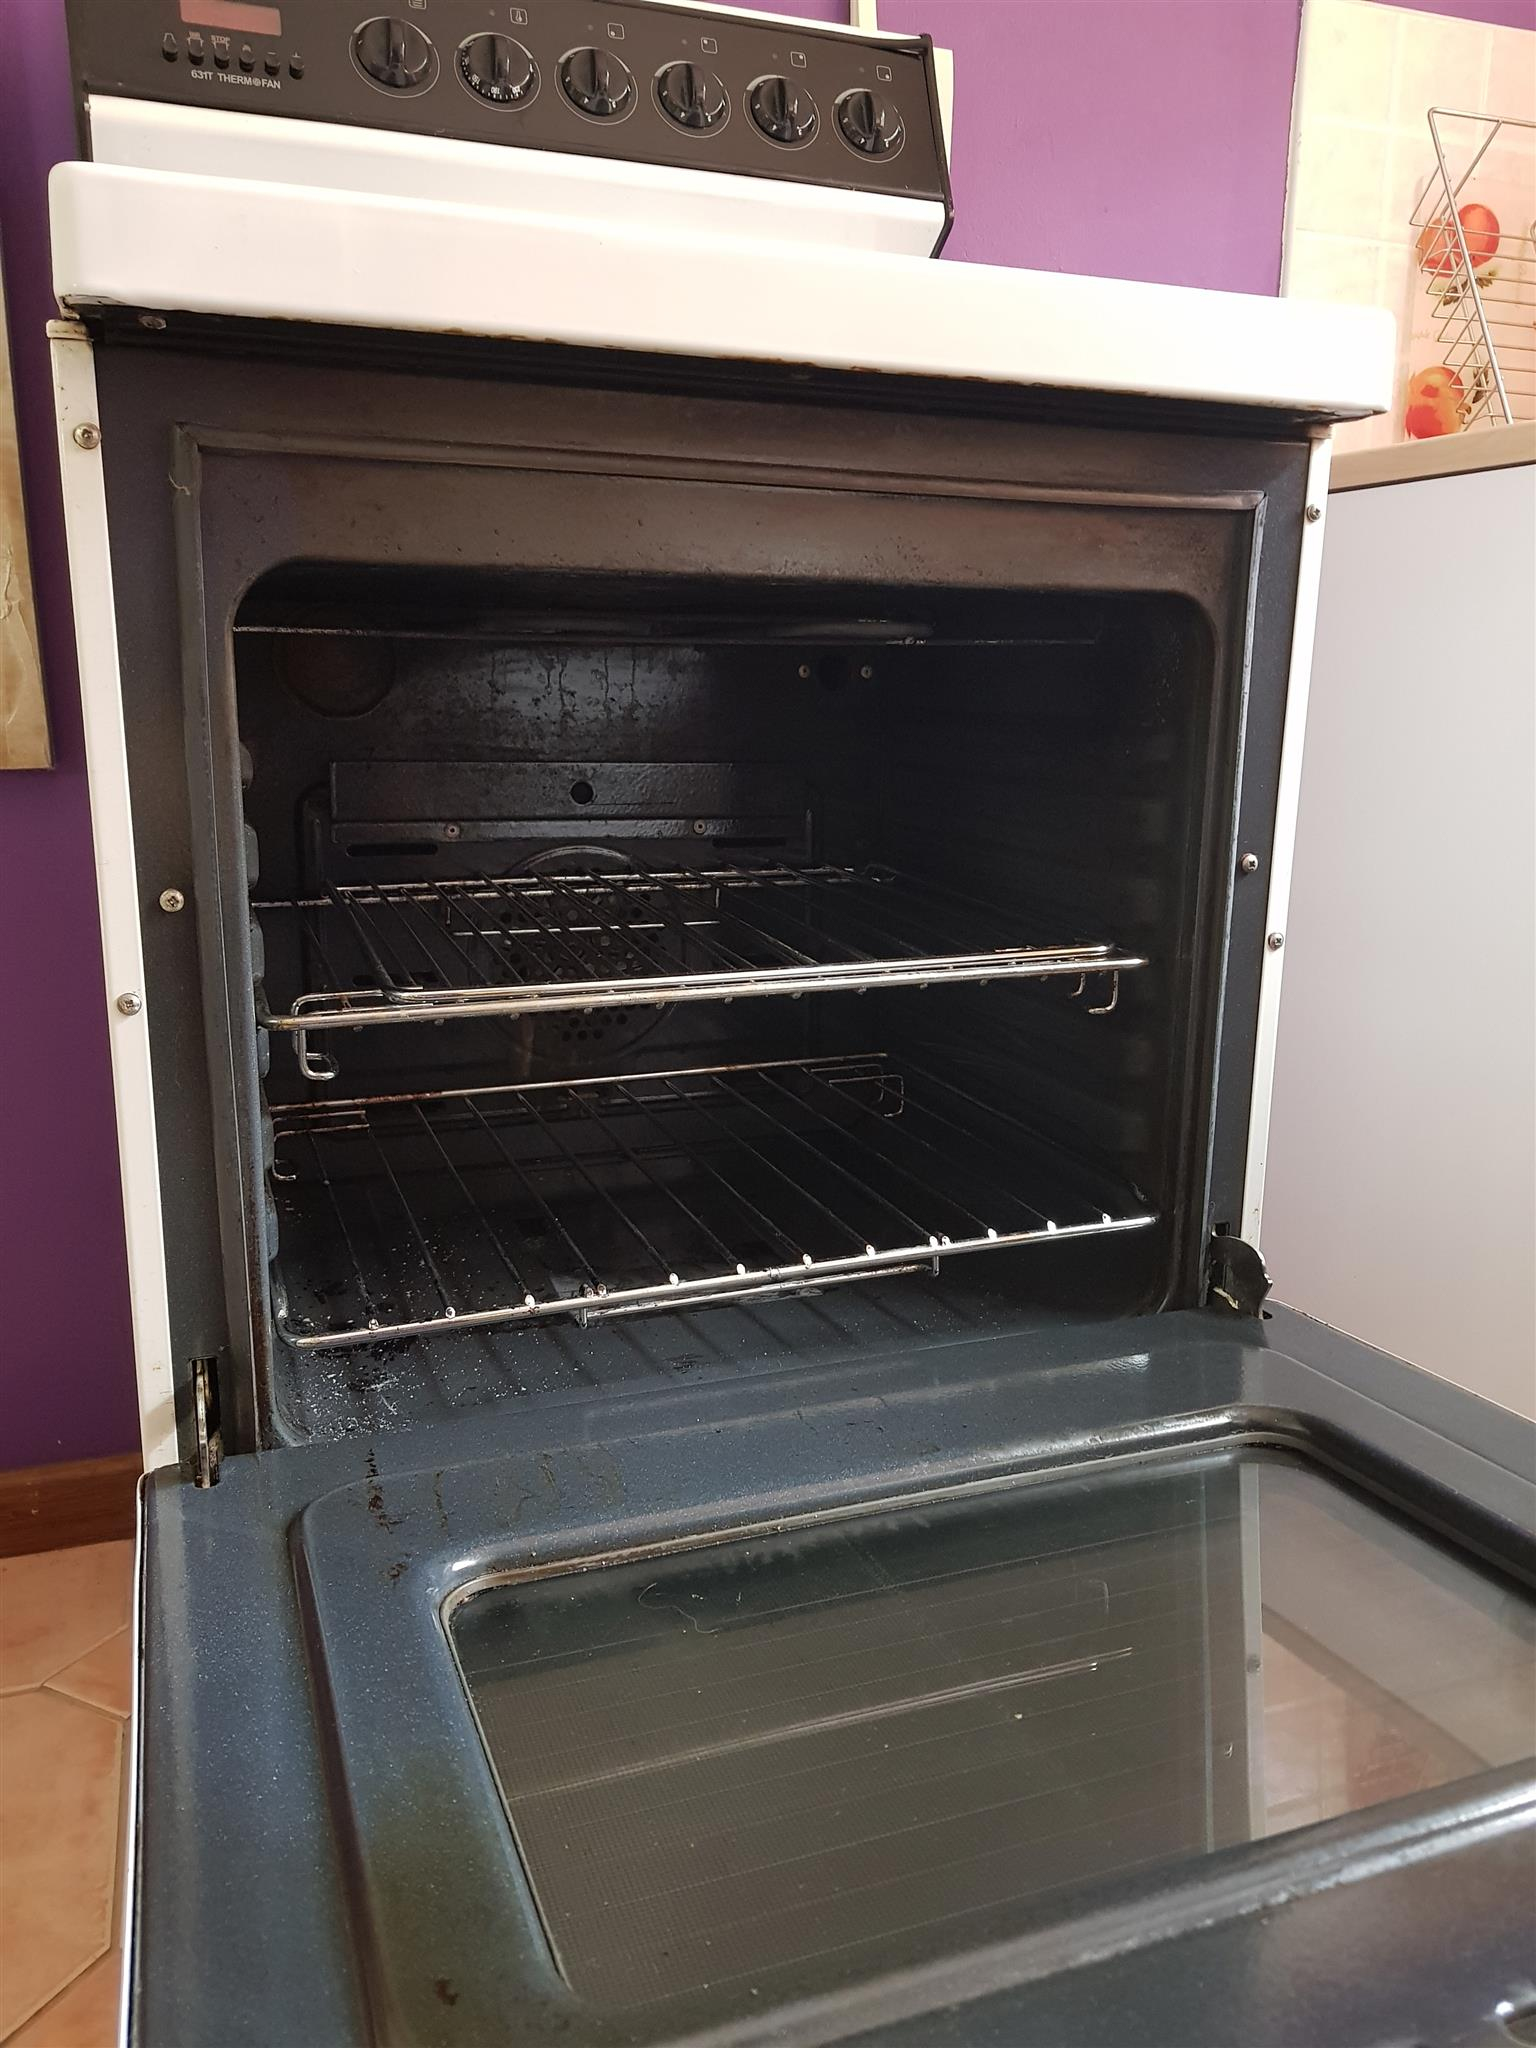 Under counter oven and hob.